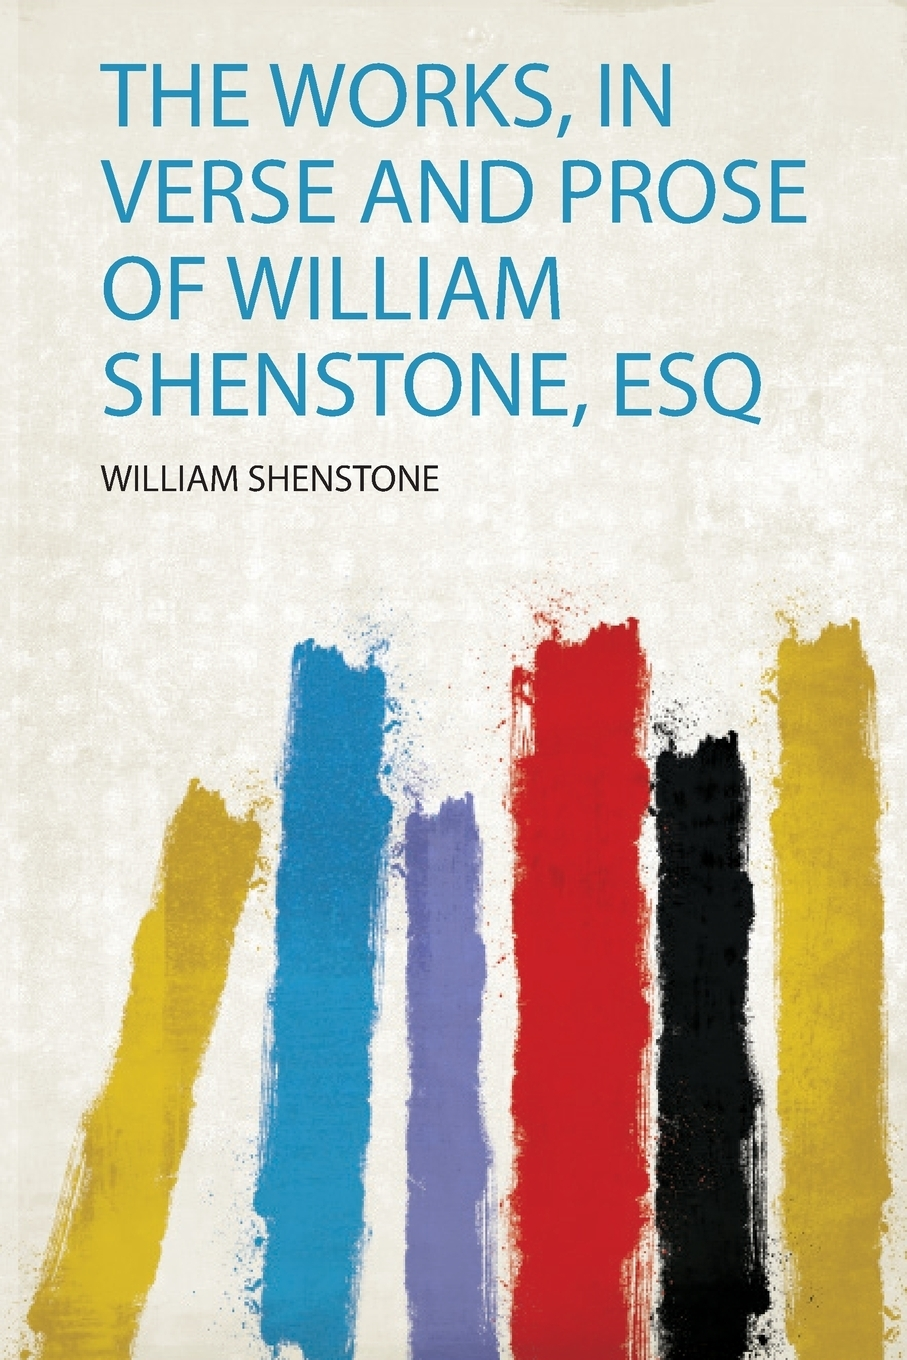 Фото - William Shenstone The Works, in Verse and Prose of William Shenstone, Esq william shenstone the works in verse and prose of william shenstone esq most of which were 2